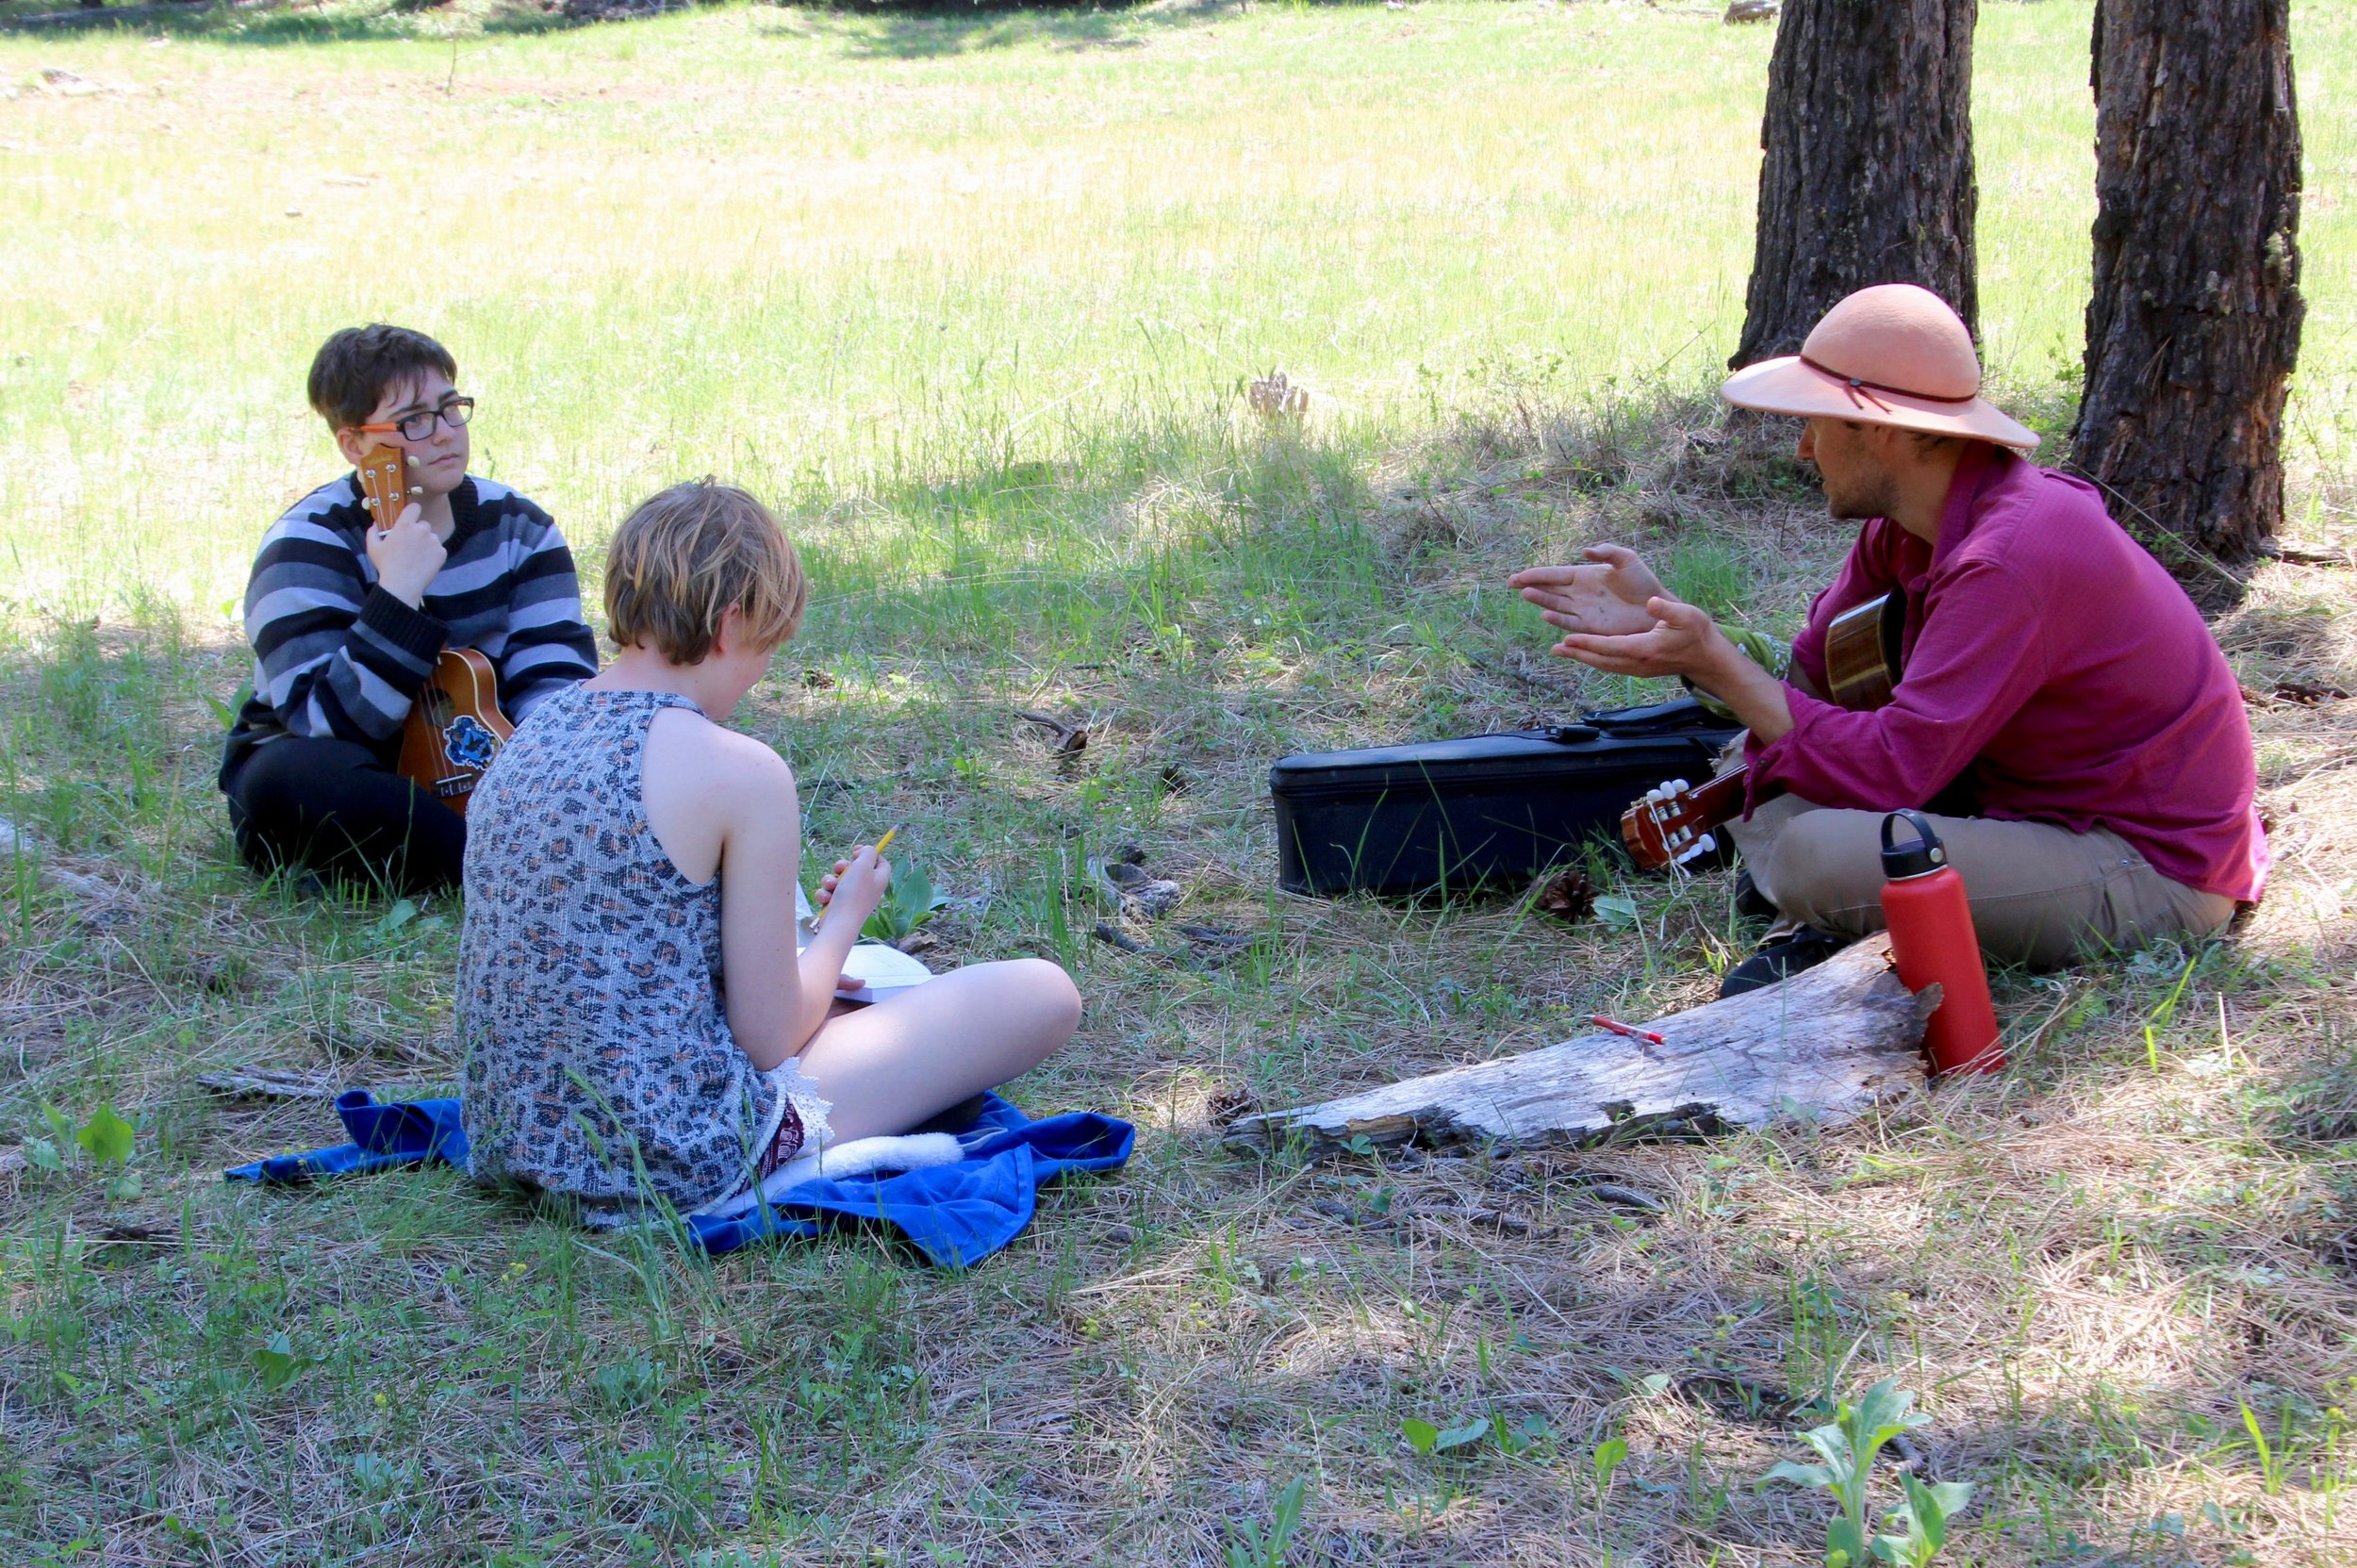 Daniel Sherriell, musician, discusses music theory and song writing in the shade of second growth forest. Check out our social media share of the song his students composed!